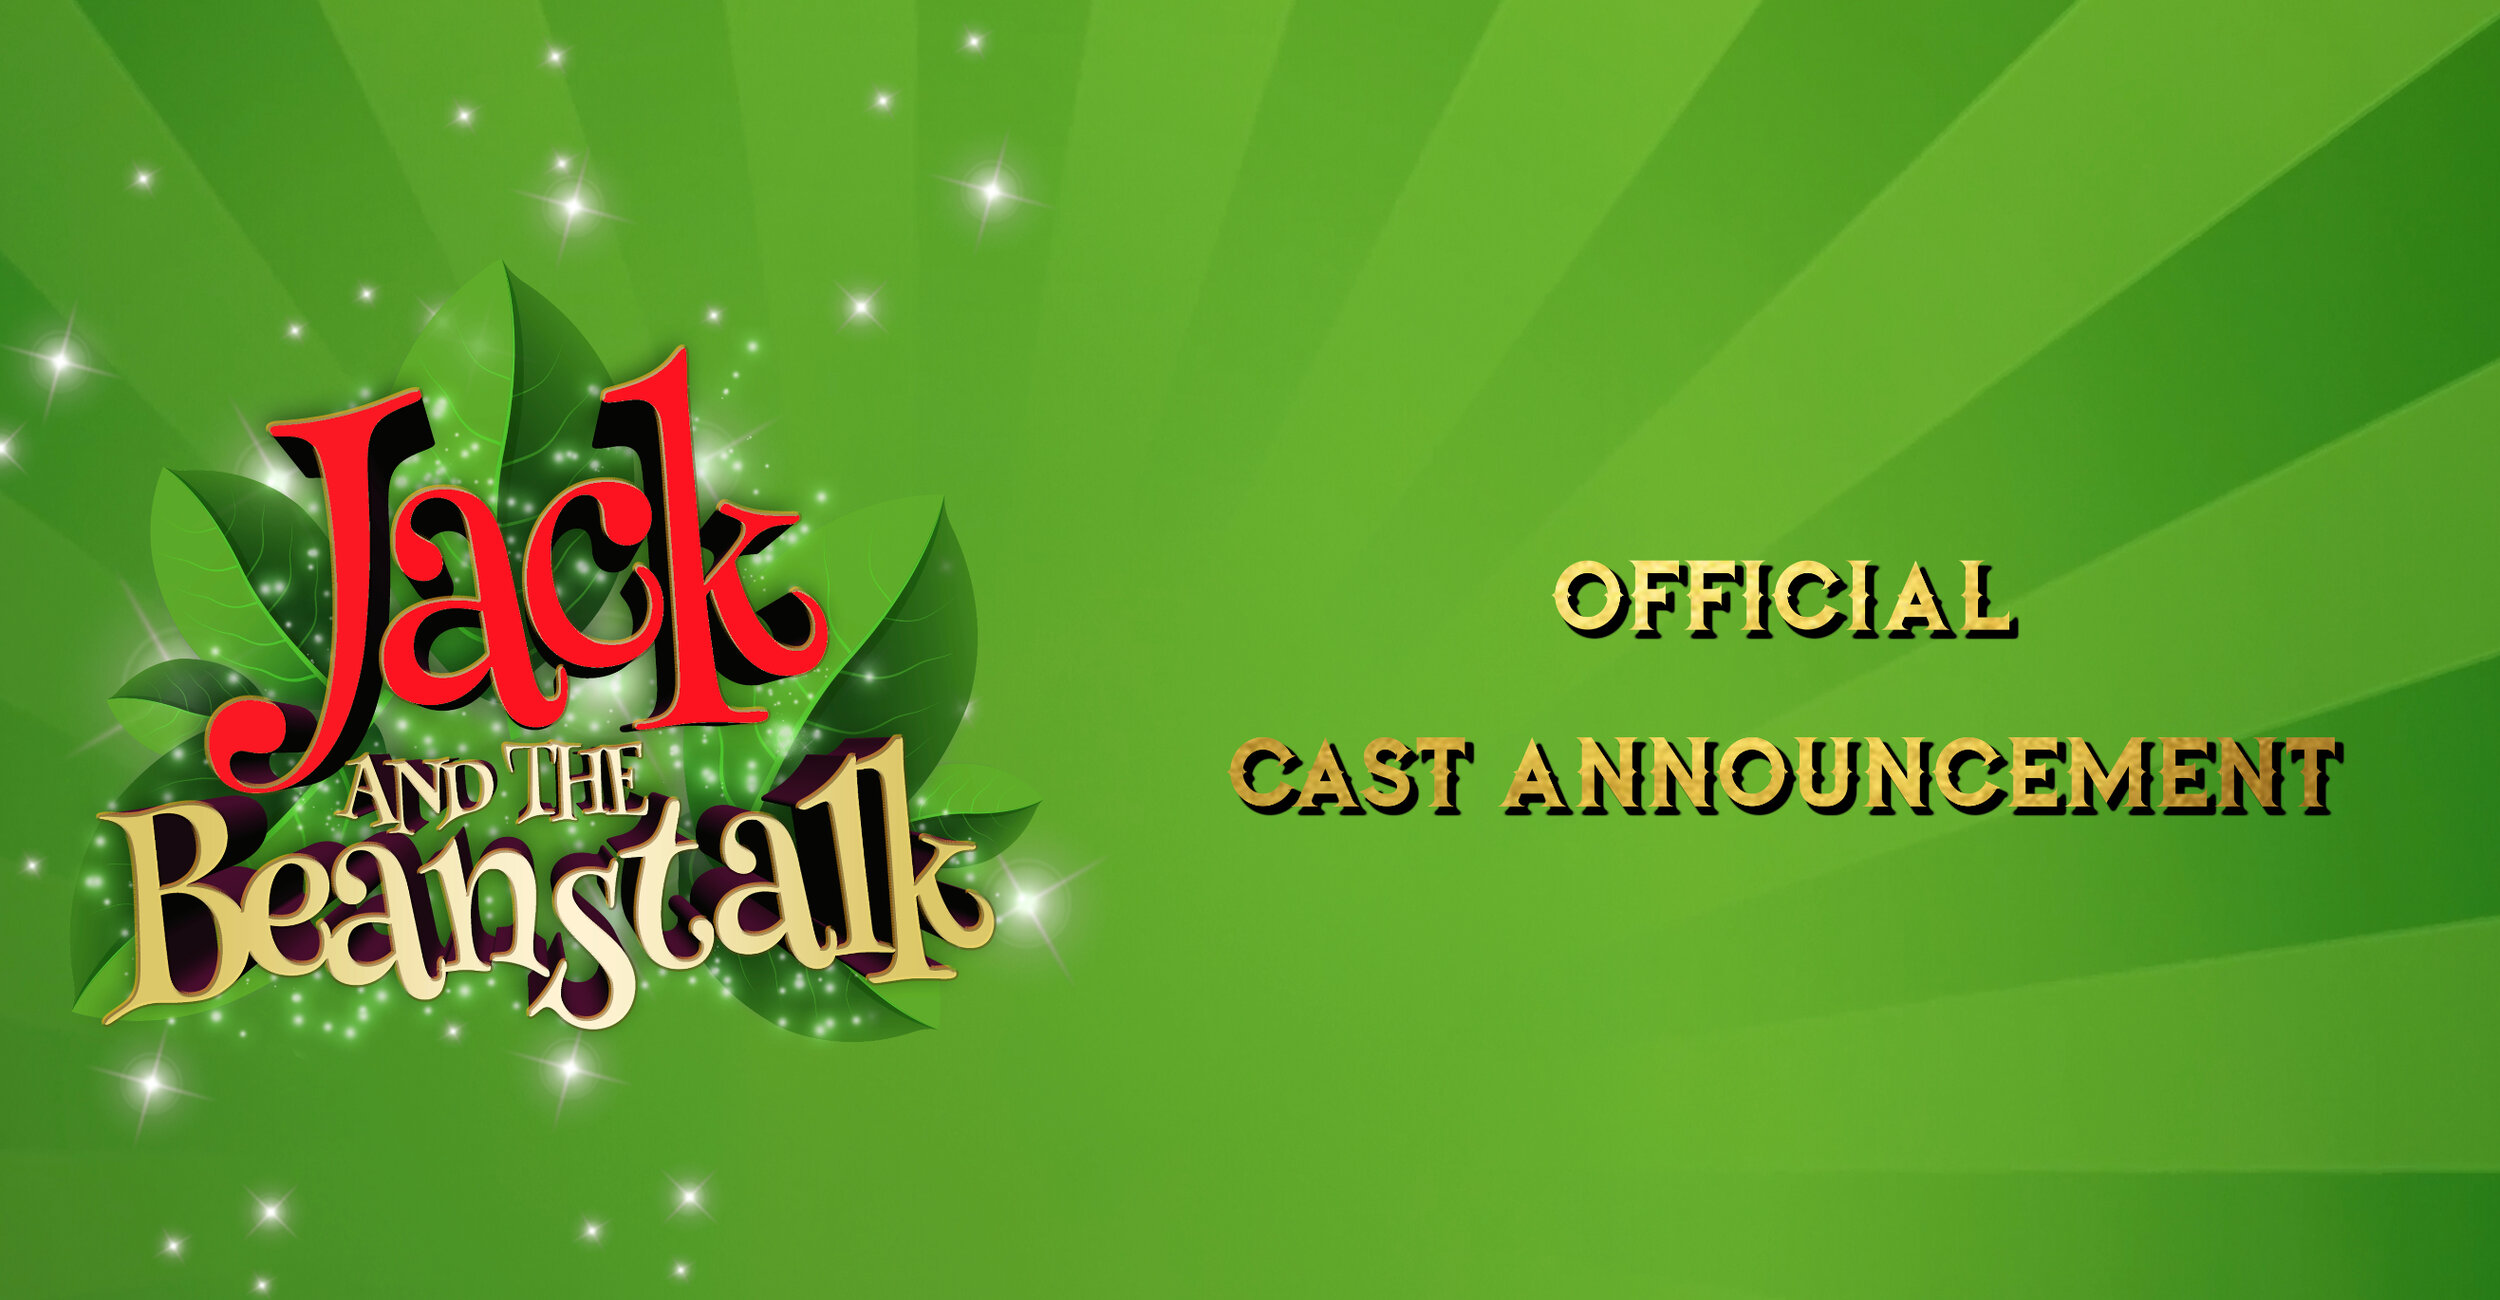 OFFICIAL CAST ANNOUNCEMENT – JACK AND THE BEANSTALK